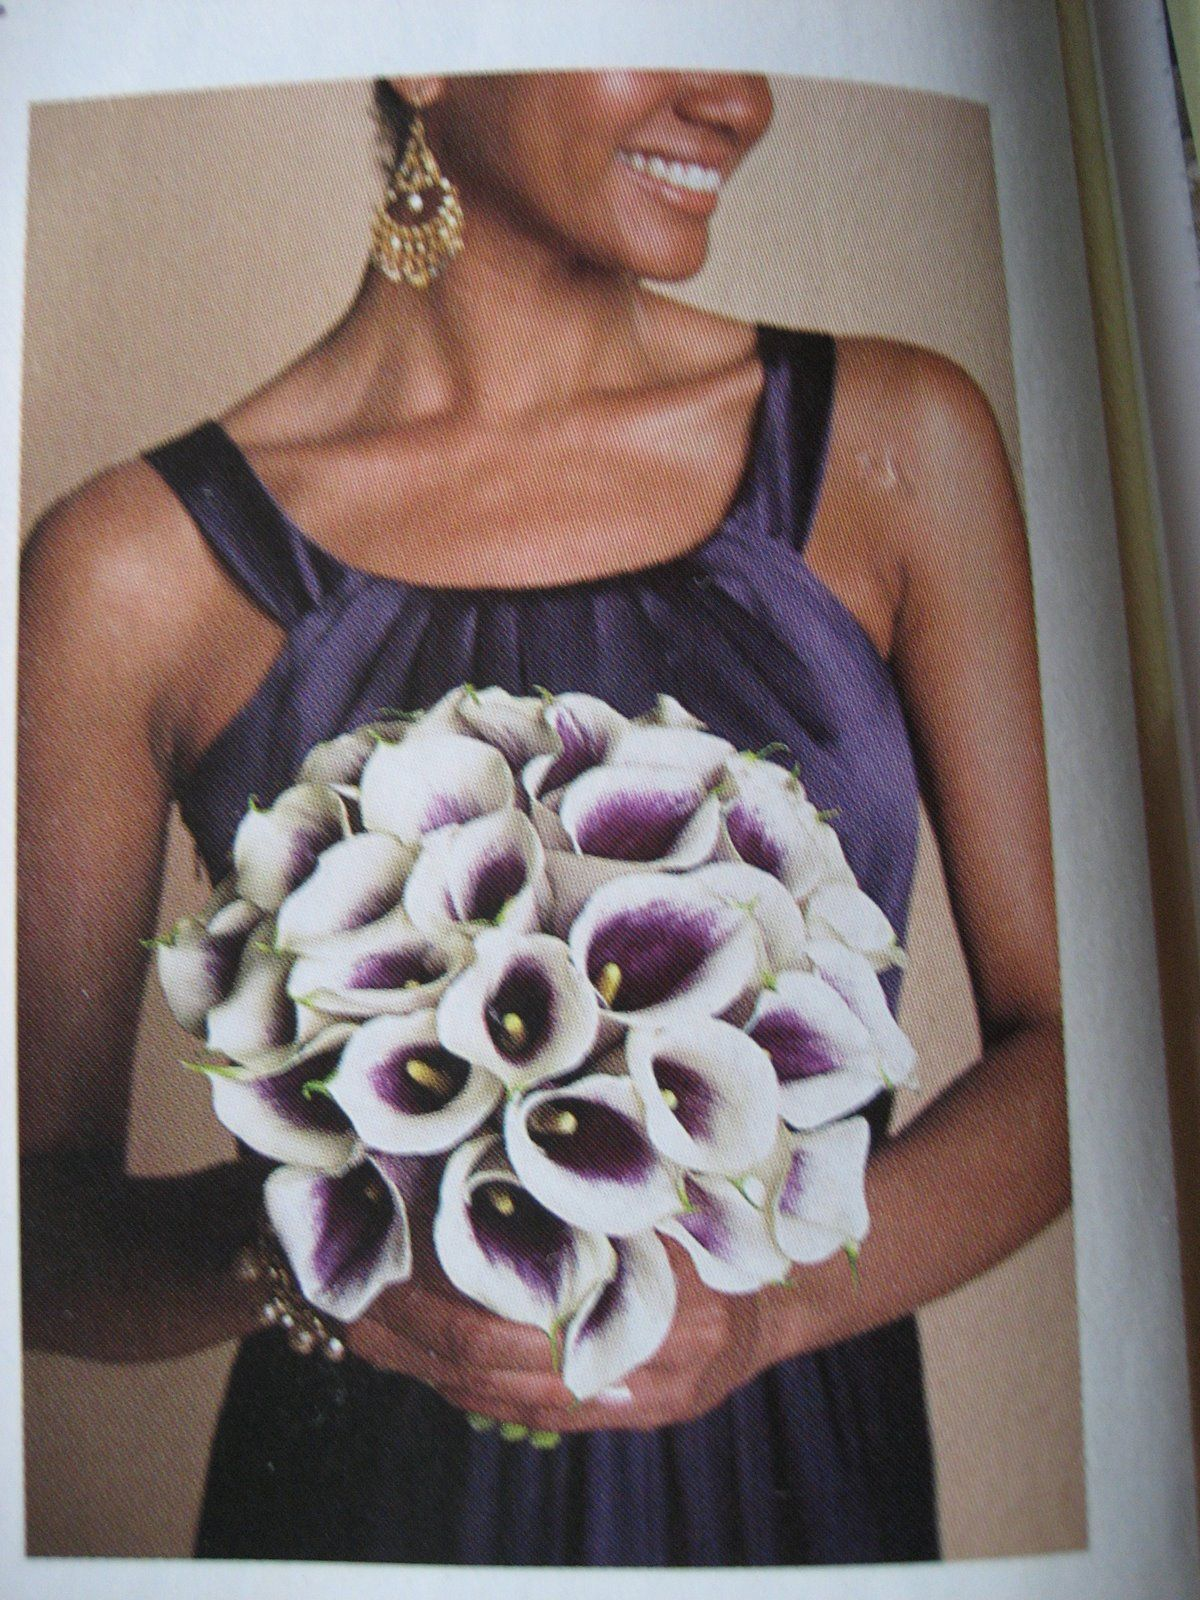 my bouquet WILL be made of these flowers. bride's maids bouquets will be white and purple calla lilies mixed together<3